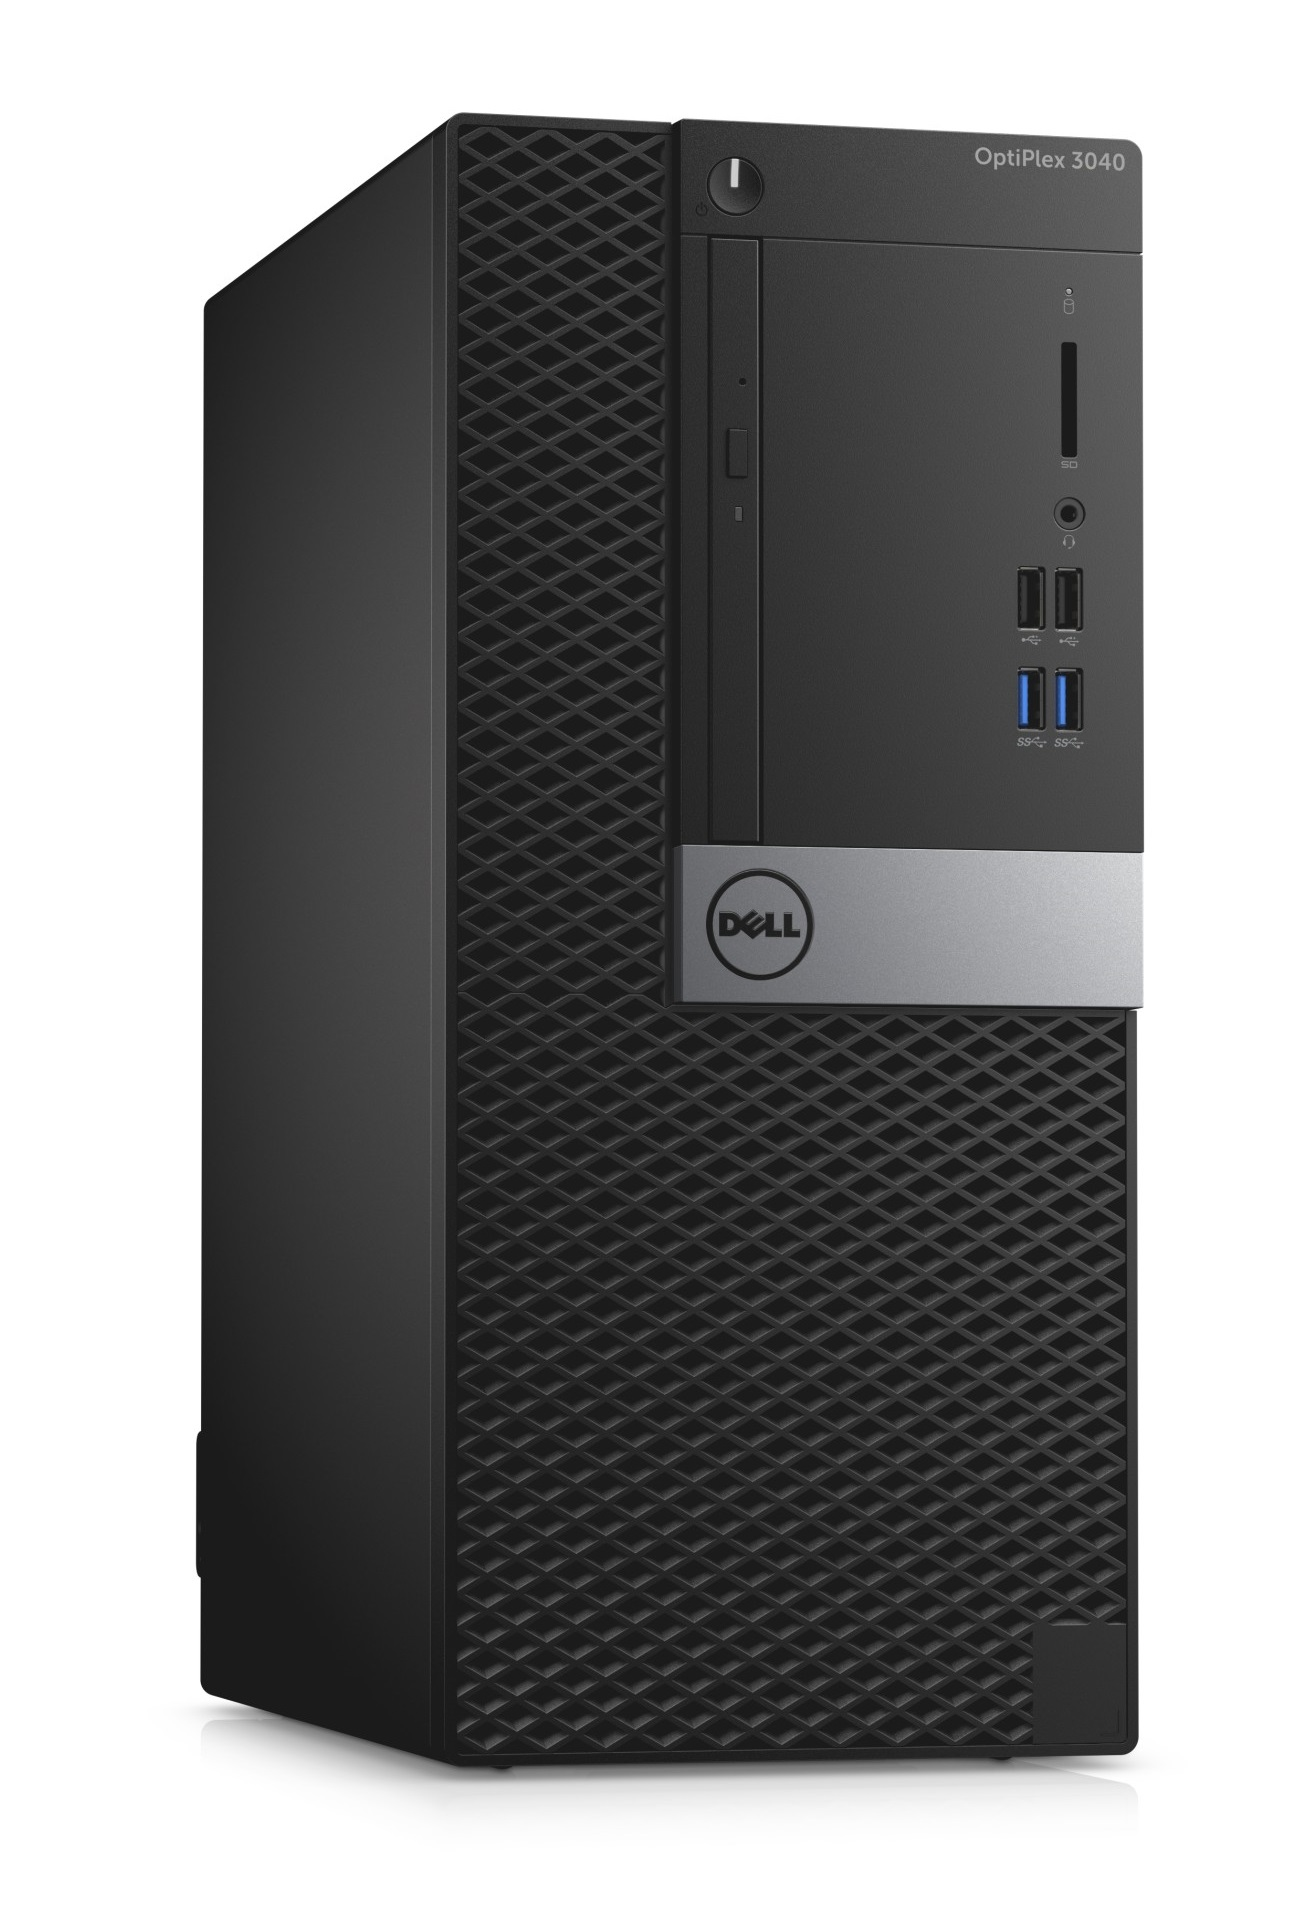 DELL OptiPlex MT 3040 Core i5-6500 /4GB/500GB/Intel HD/Win 10 64bit/3Yr NBD